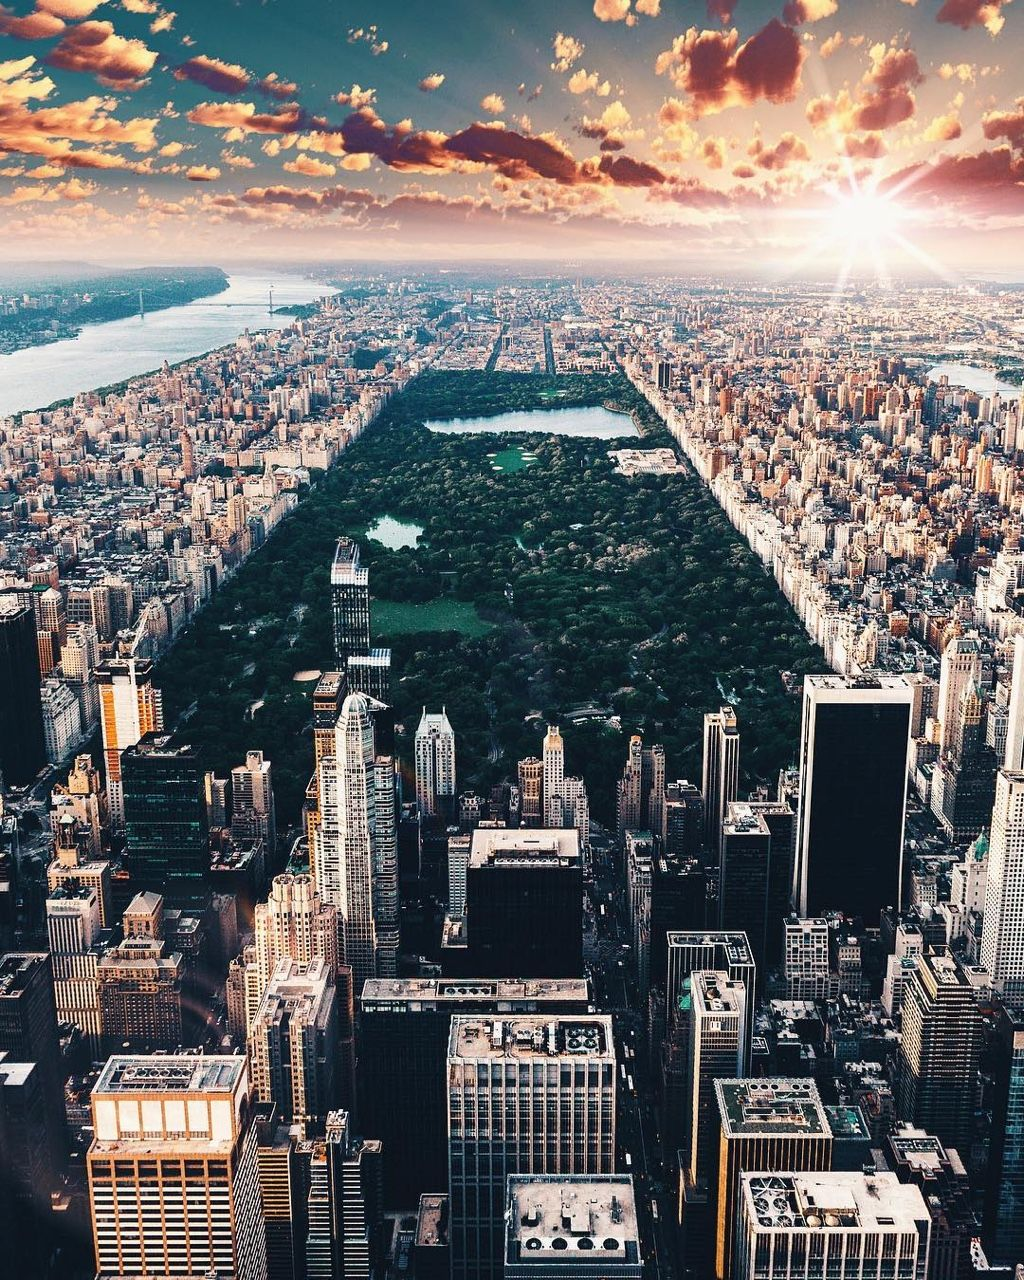 40 Central Park South Nyc: Good Morning New York City From The Gorgeous Central Park